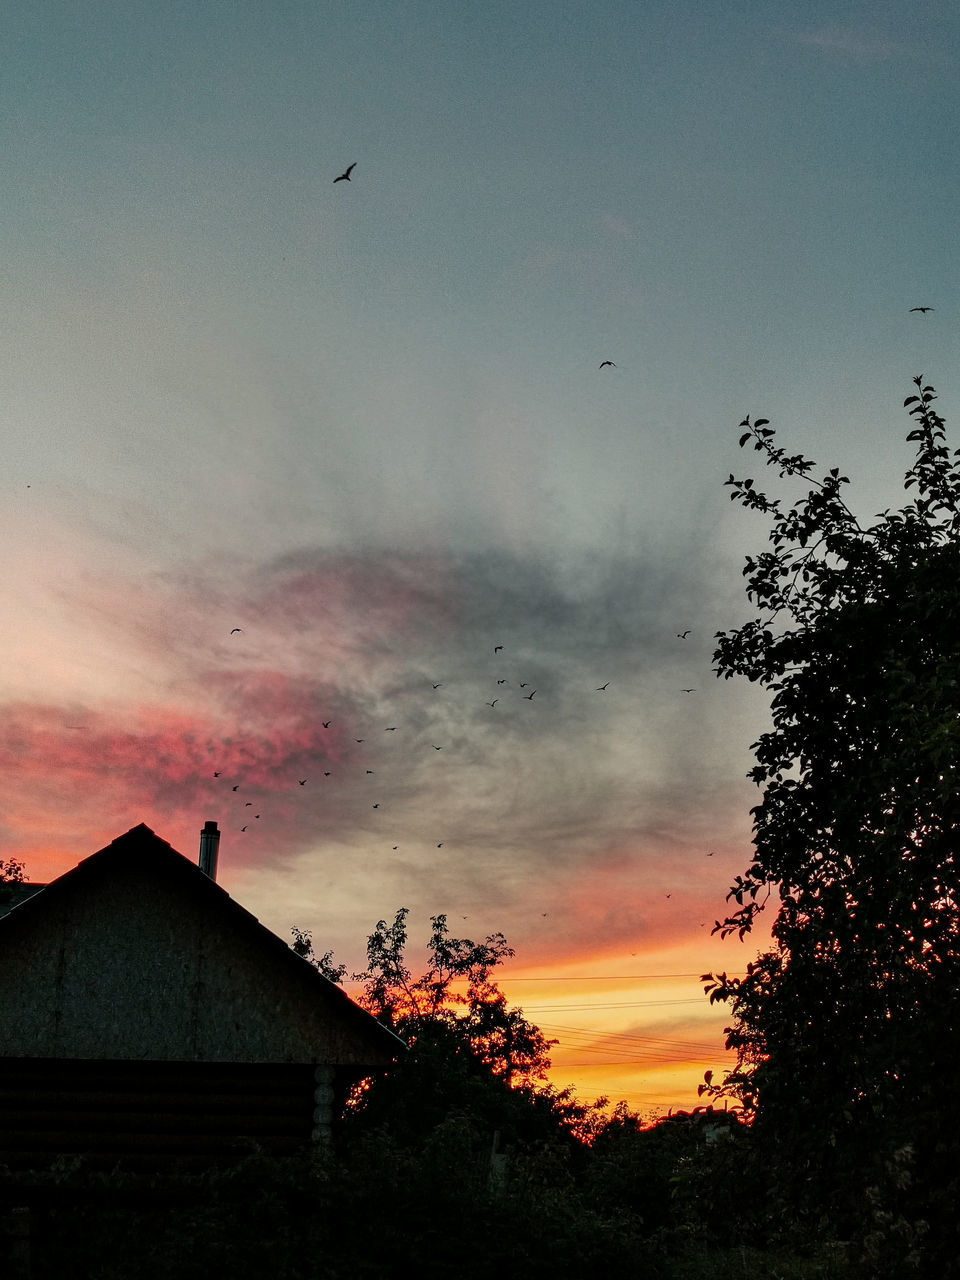 SILHOUETTE OF TREES AND HOUSES AGAINST SKY AT SUNSET